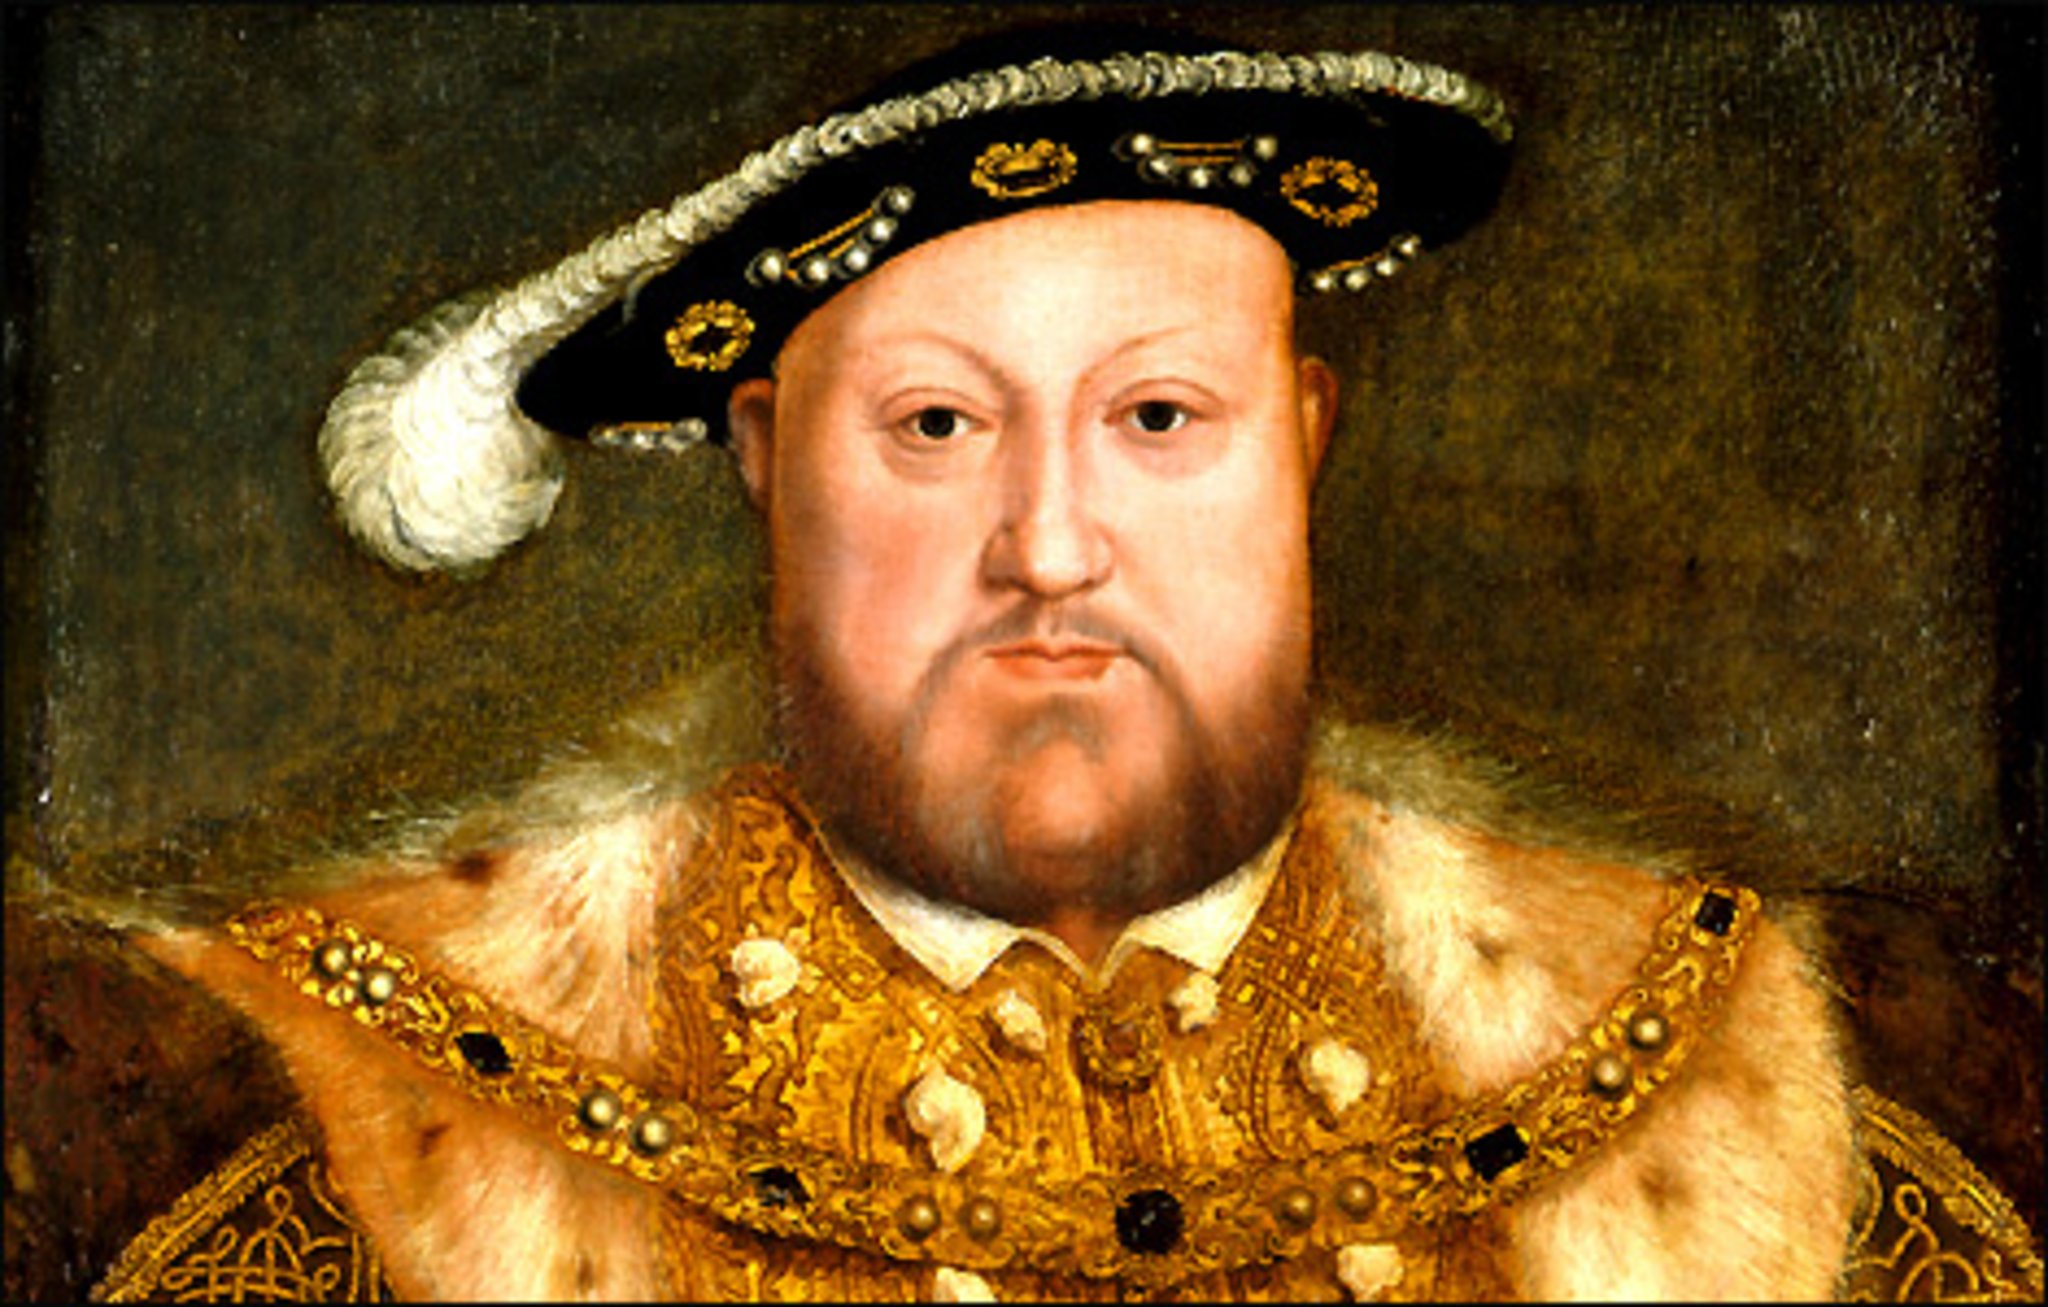 a biography of henry viii one of englands strongest and least popular monarchs Other successful monarchs have included our present queen, elizabeth ii, who does her job (many would say now irrelevant job) with dignity and grace henry v, who won some great military victories against the french edward iii, who was also successful in war, and henry ii, who gave england a better justice system and (albeit with the murder of.